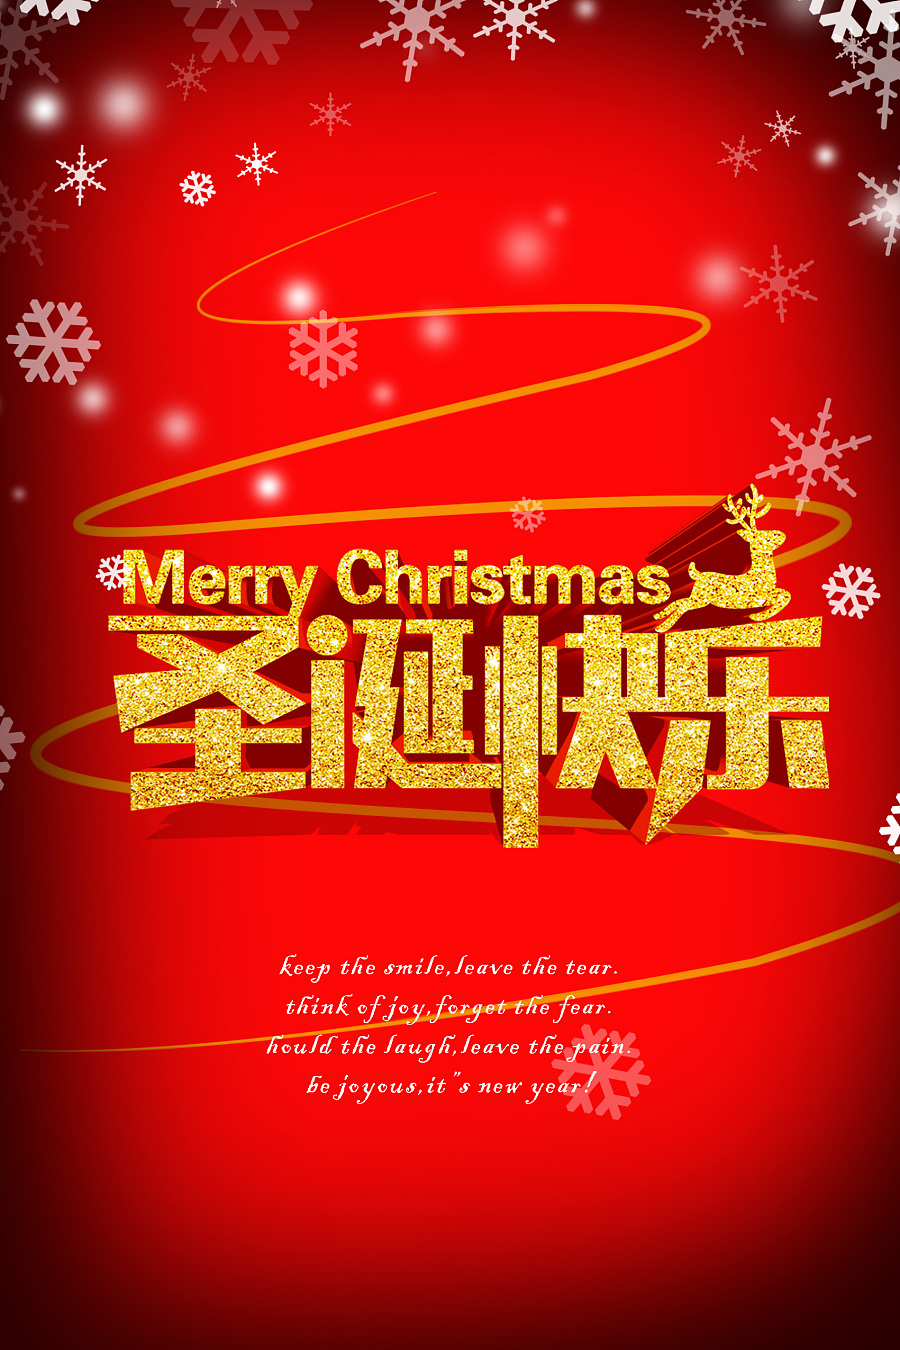 chinesefontdesign.com 2016 12 06 19 34 10 27P Super cool Christmas theme Chinese typeface design